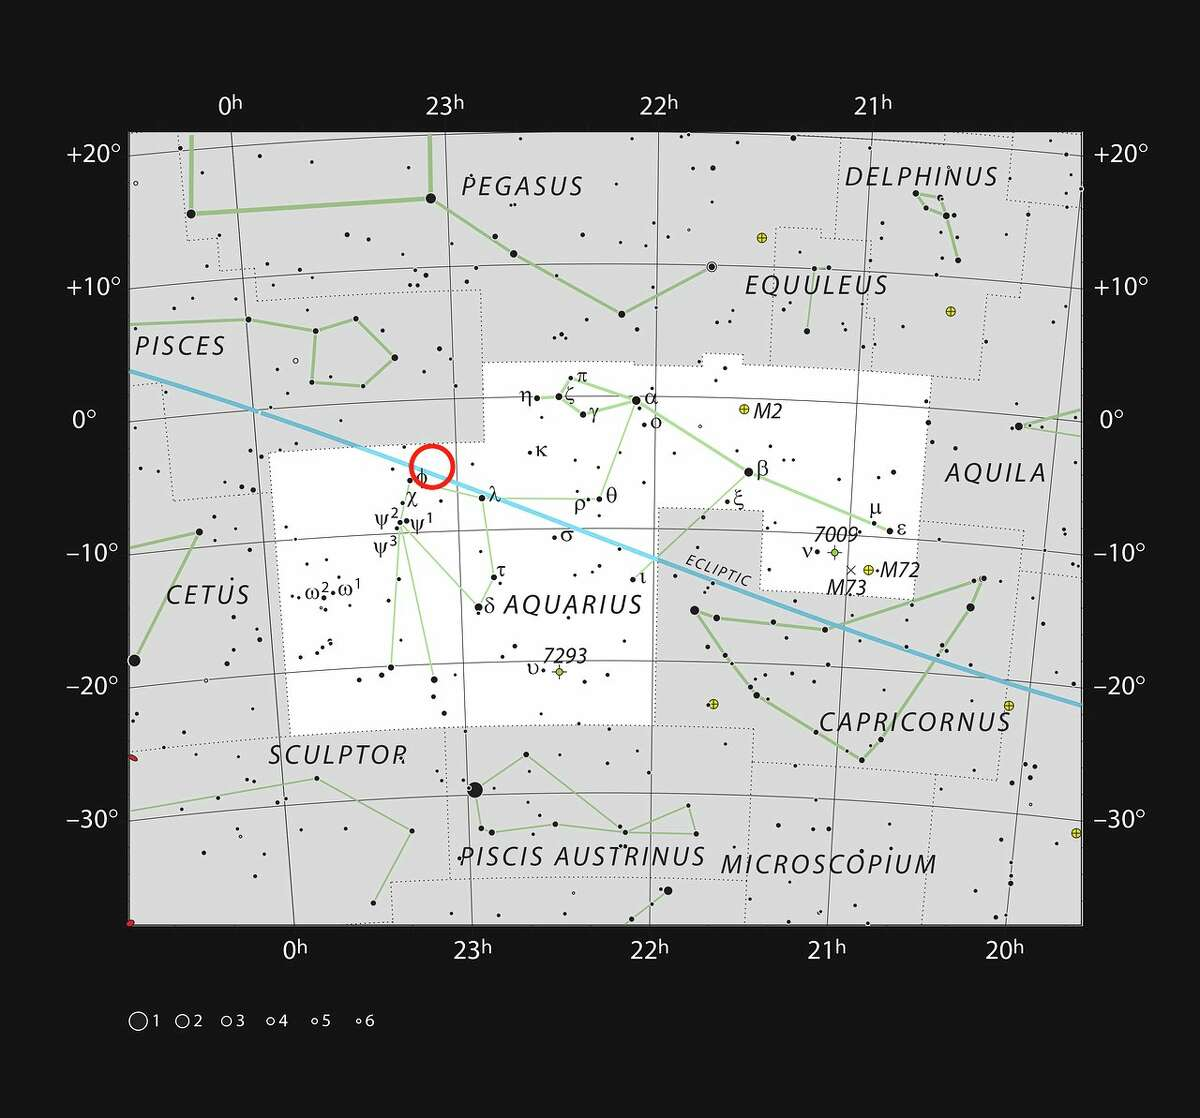 ESO caption: This chart shows the naked eye stars visible on a clear dark night in the sprawling constellation of Aquarius (The Water Carrier). The position of the faint and very red ultracool dwarf star TRAPPIST-1 is marked. Although it is relatively close to the Sun, it is very faint and not visible in small telescopes.